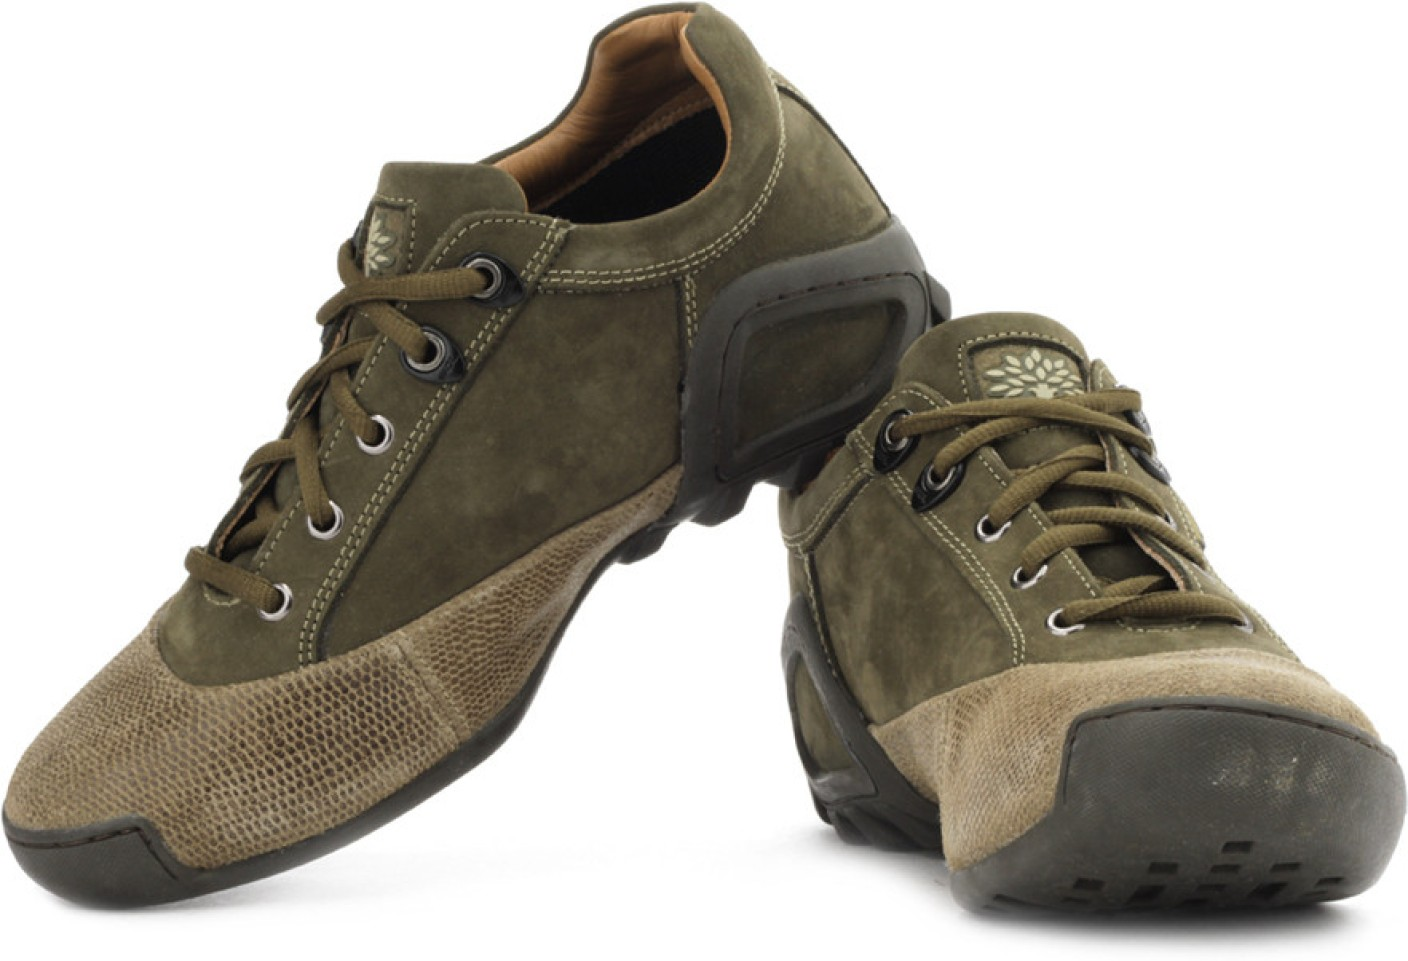 Woodland Outdoors Shoes For Men - Buy Green Color Woodland ...